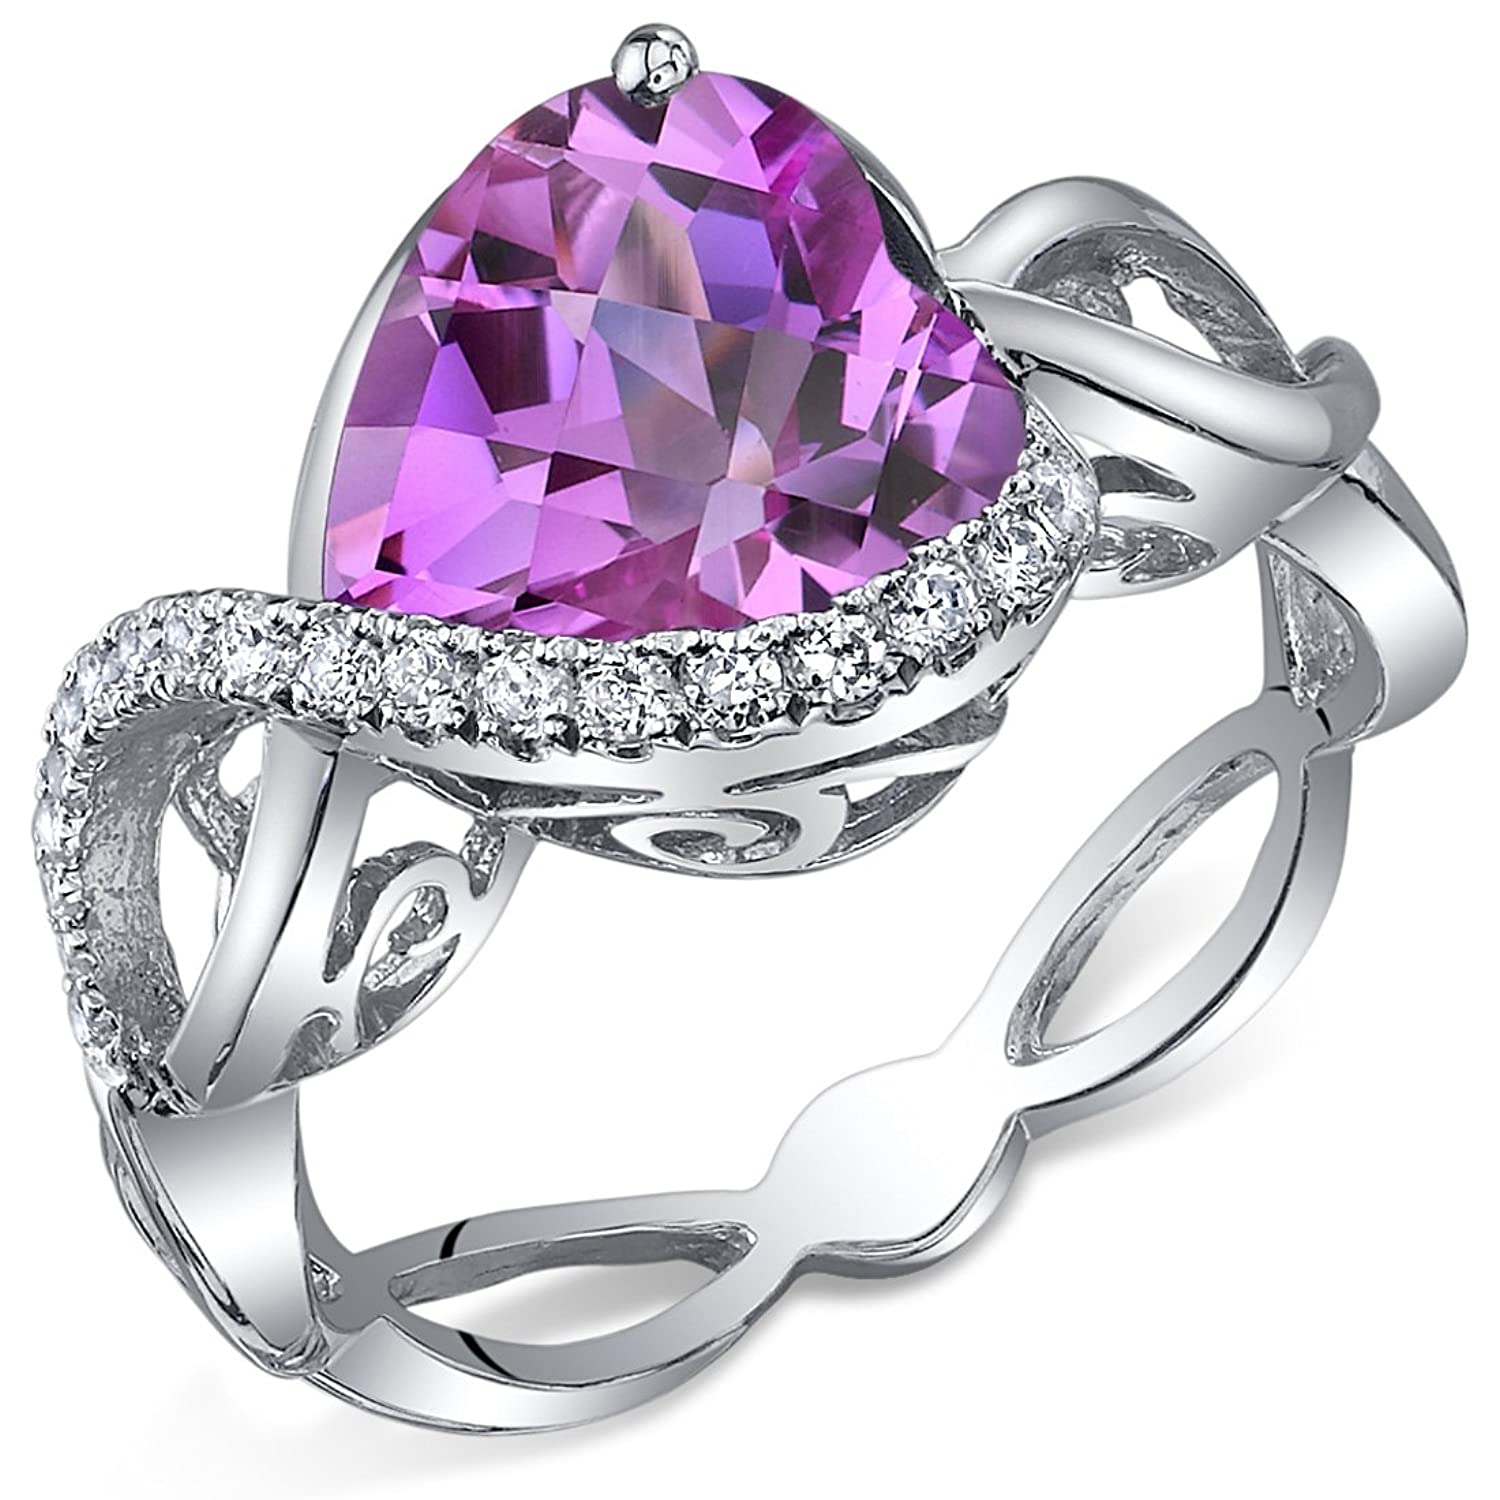 4.00 Carats Created Pink Sapphire Ring Sterling Silver Heart Shape Swirl Design Sizes 5 to 9